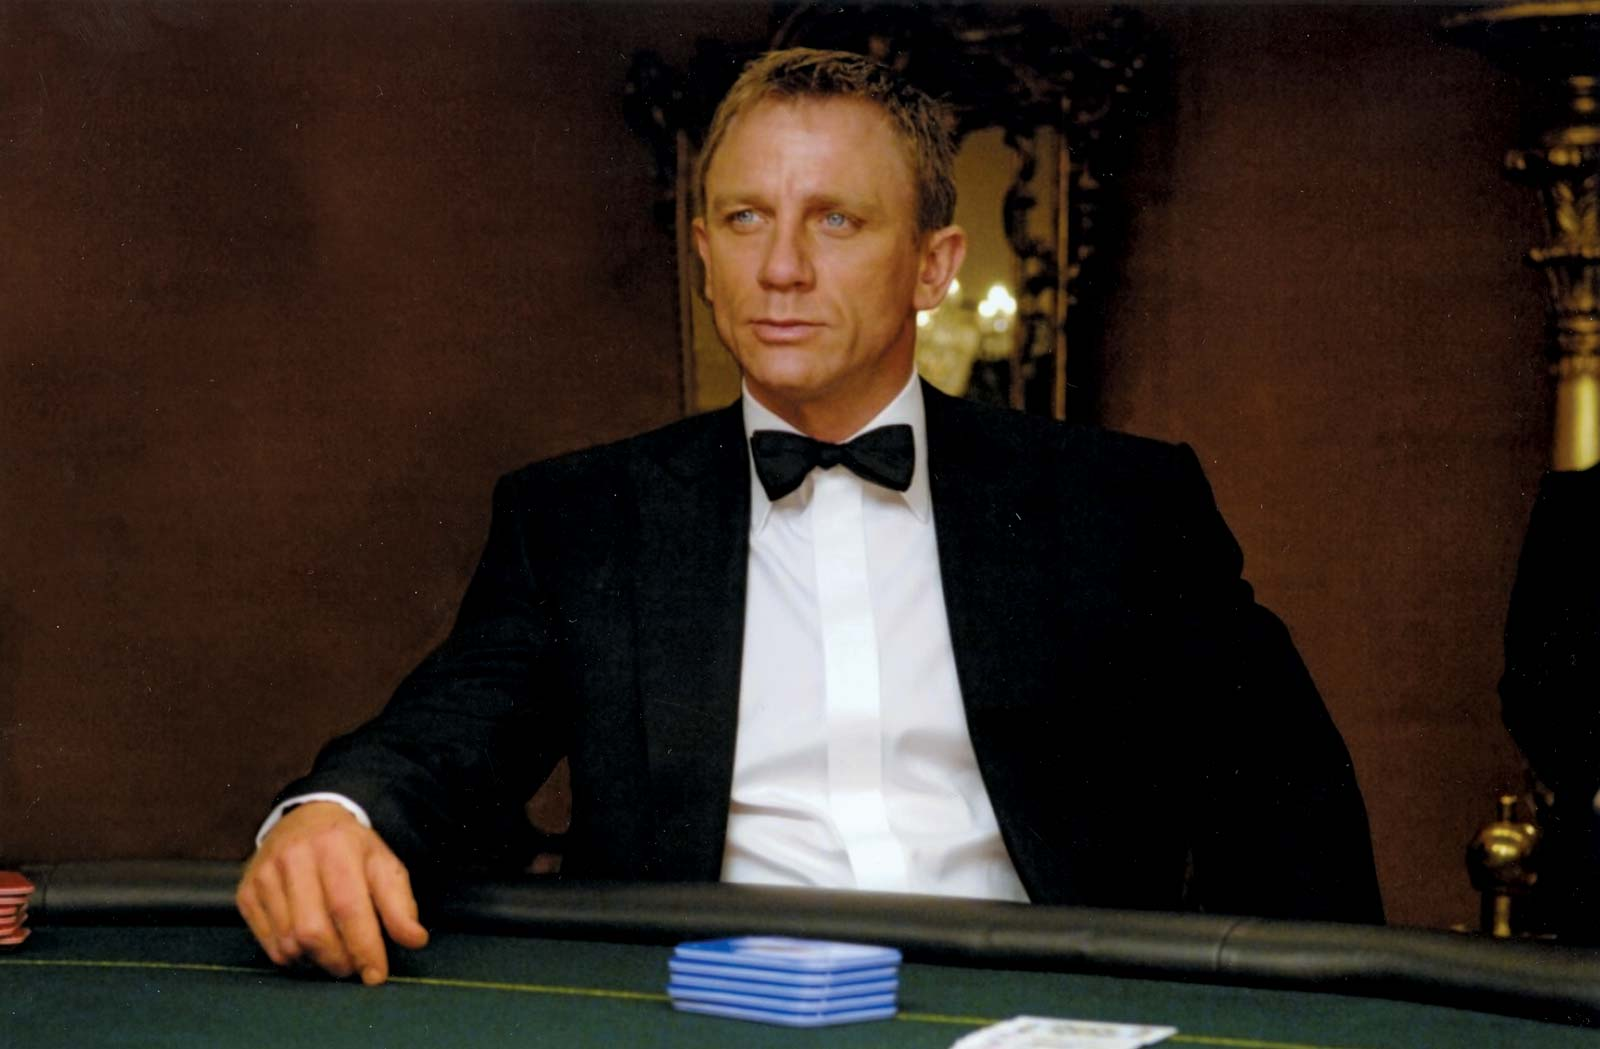 How to Dress for your Night at the Casino: 5 Allowed Dress Codes